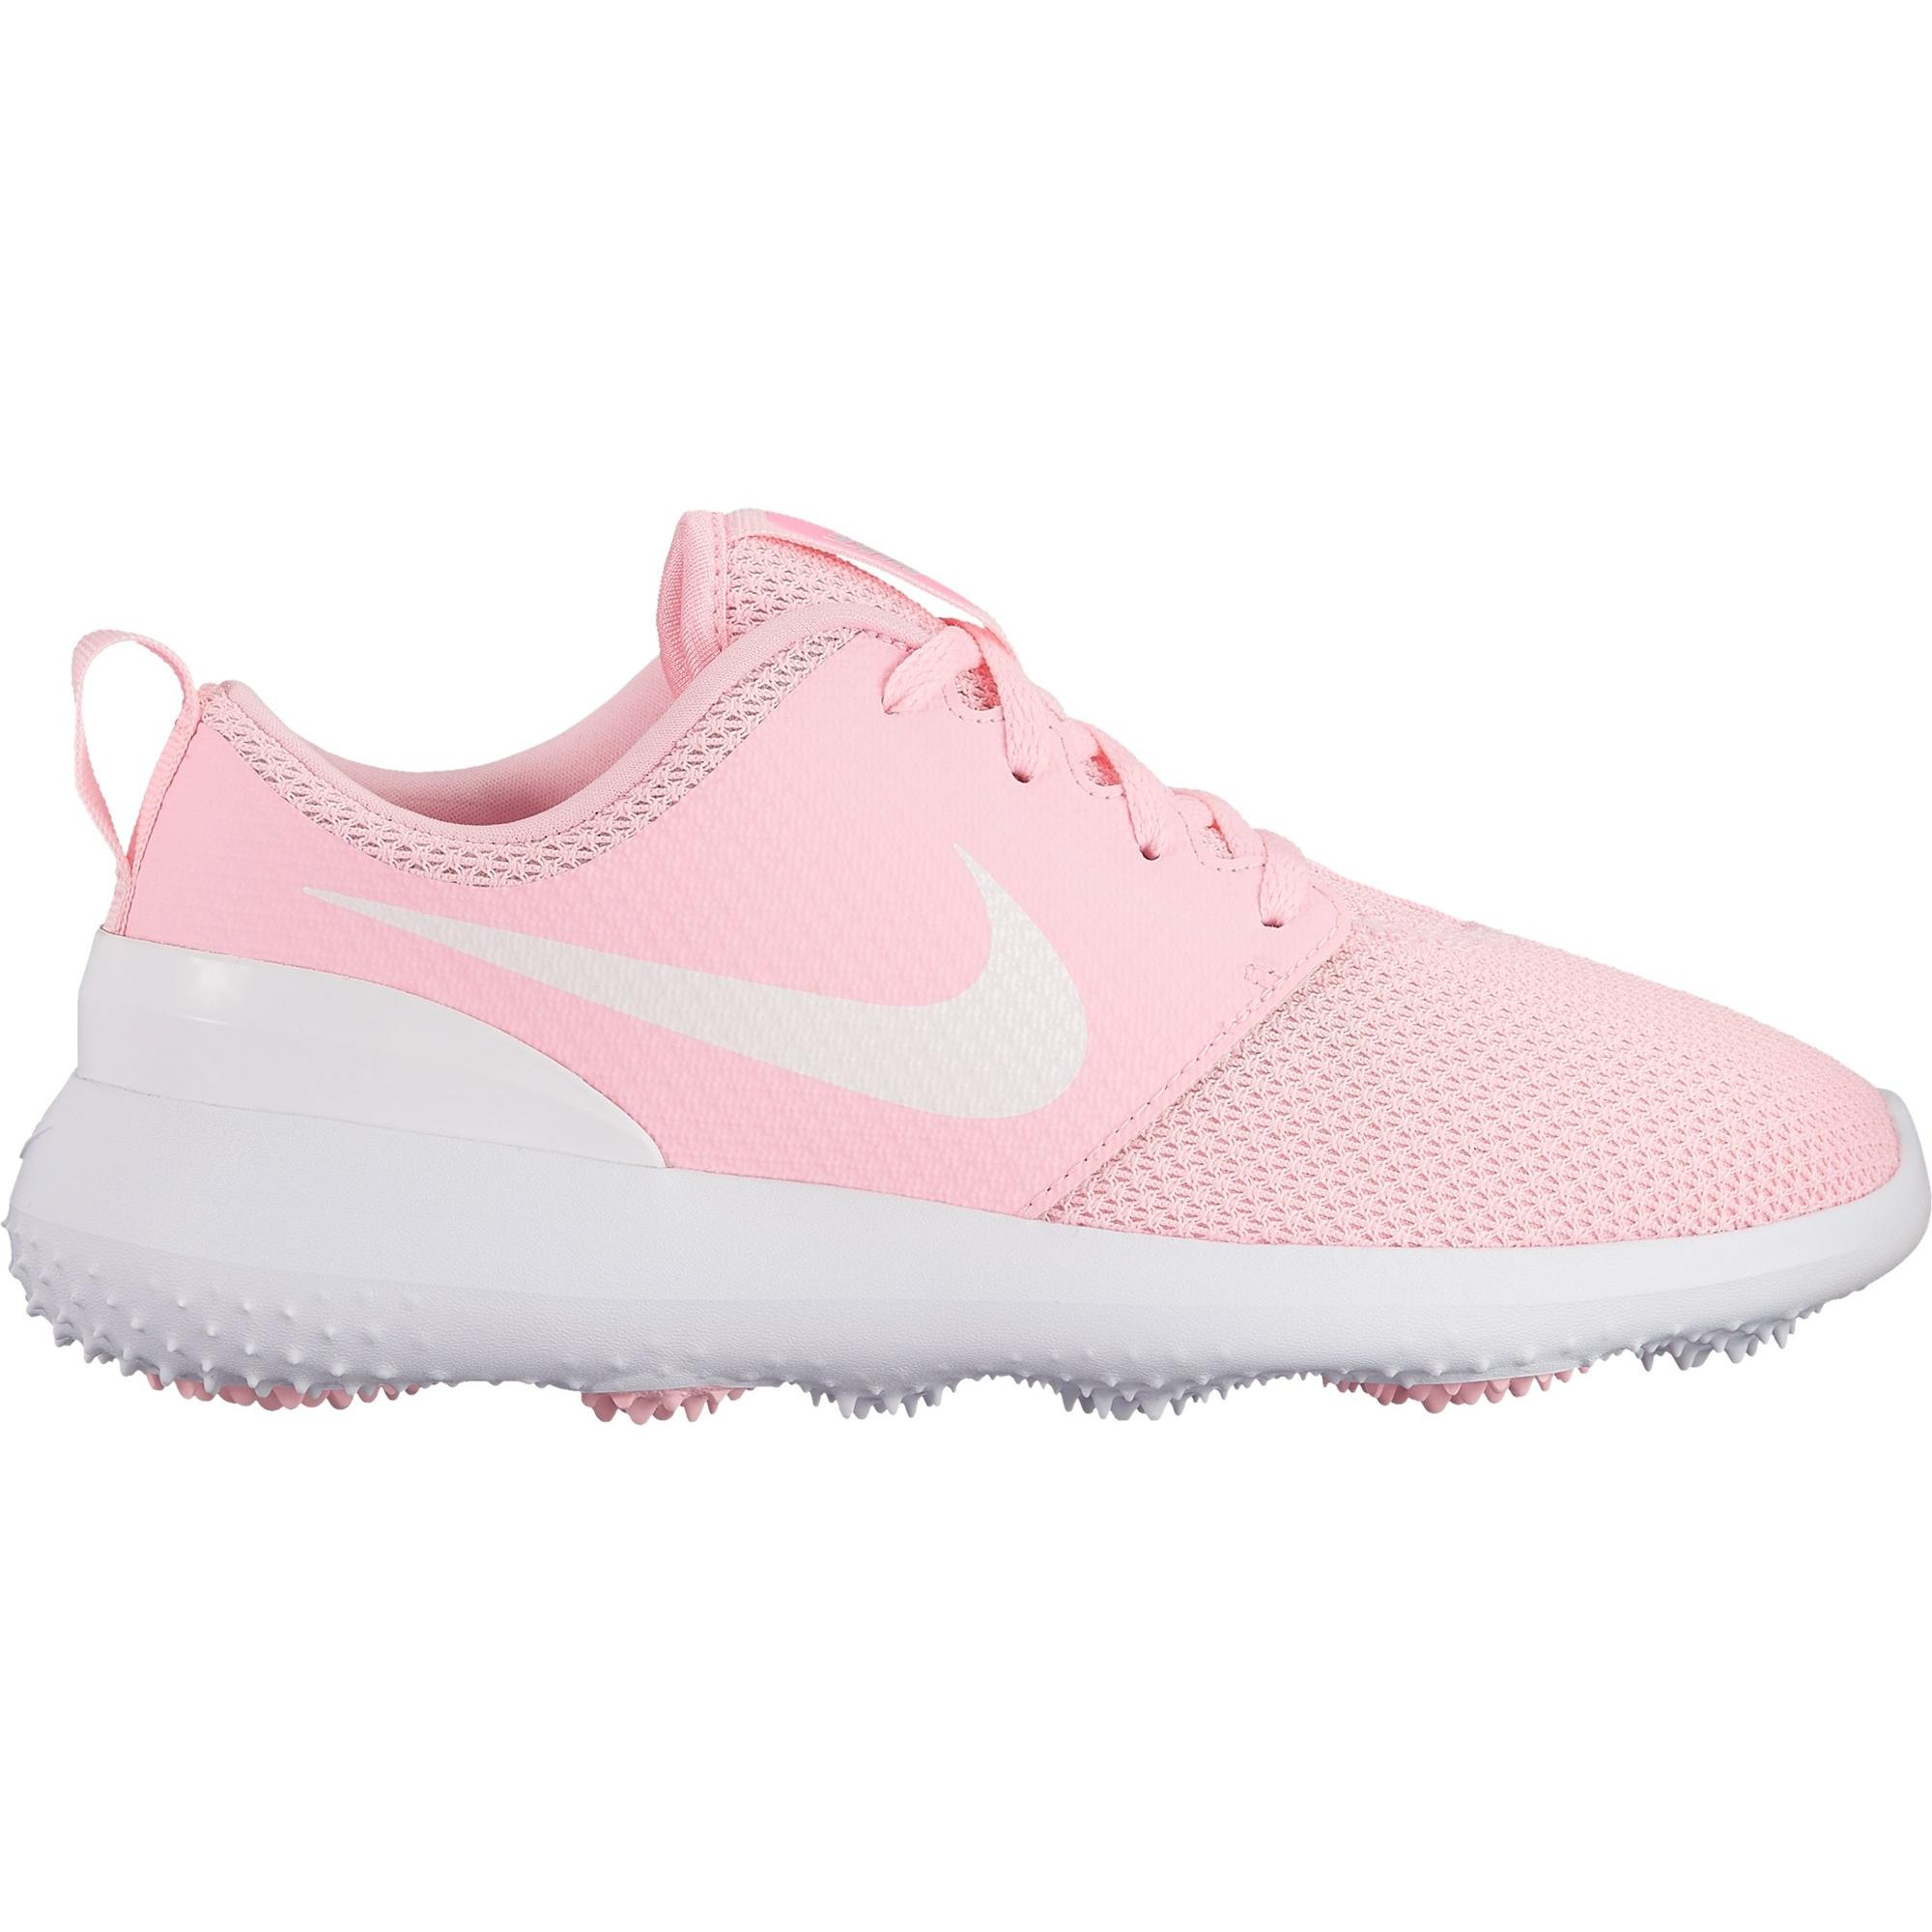 wholesale dealer 31c41 512ef Women s Roshe G Spikeless Golf Shoe - Pink   NIKE   Golf Town Limited